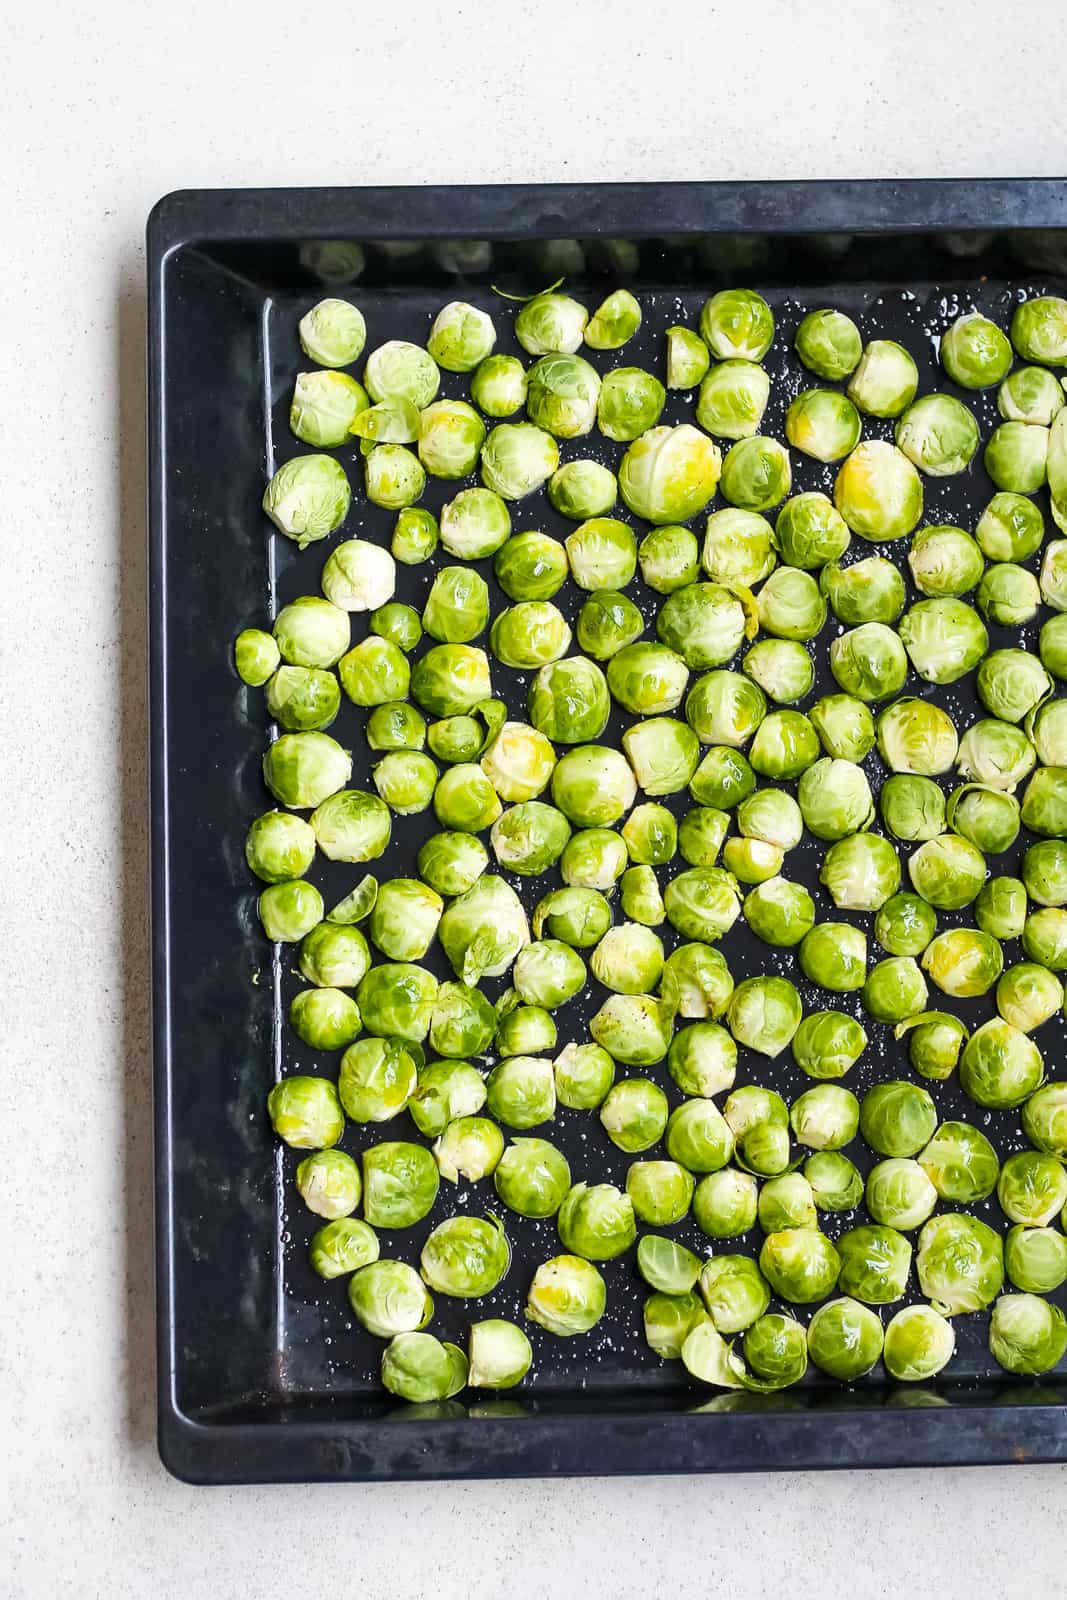 brussels sprouts on a metal tray